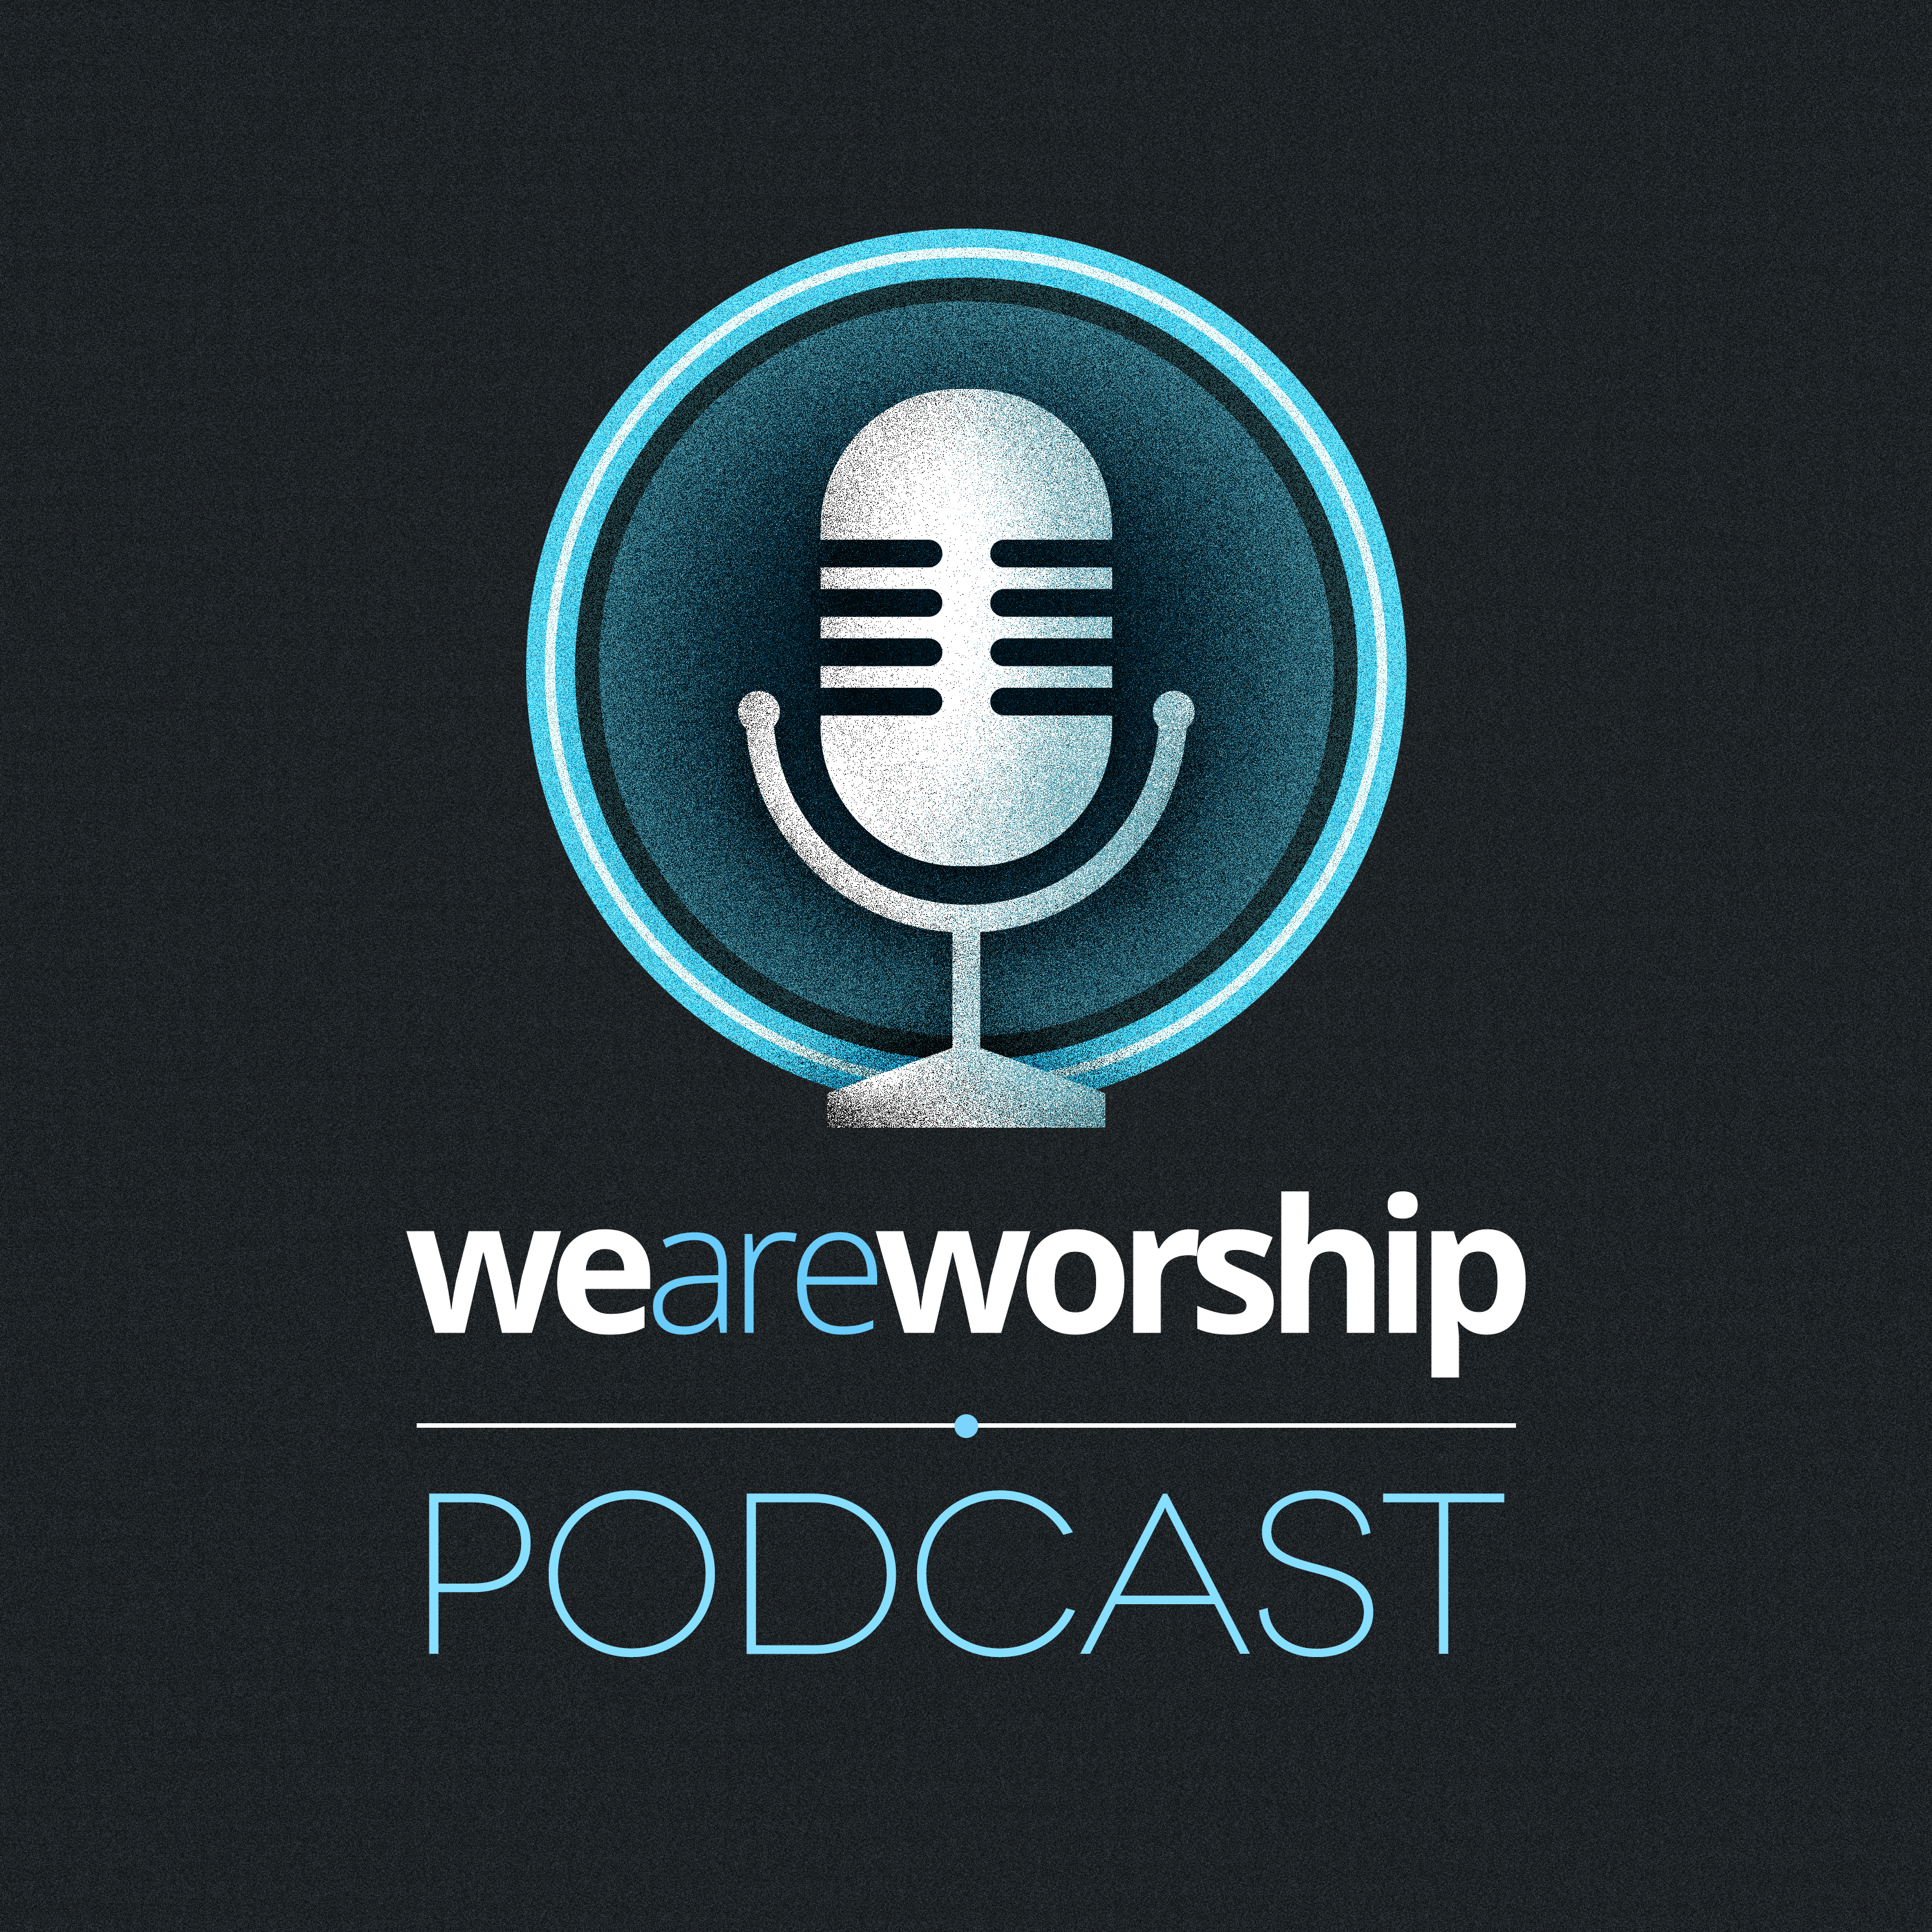 We Are Worship Podcast show art